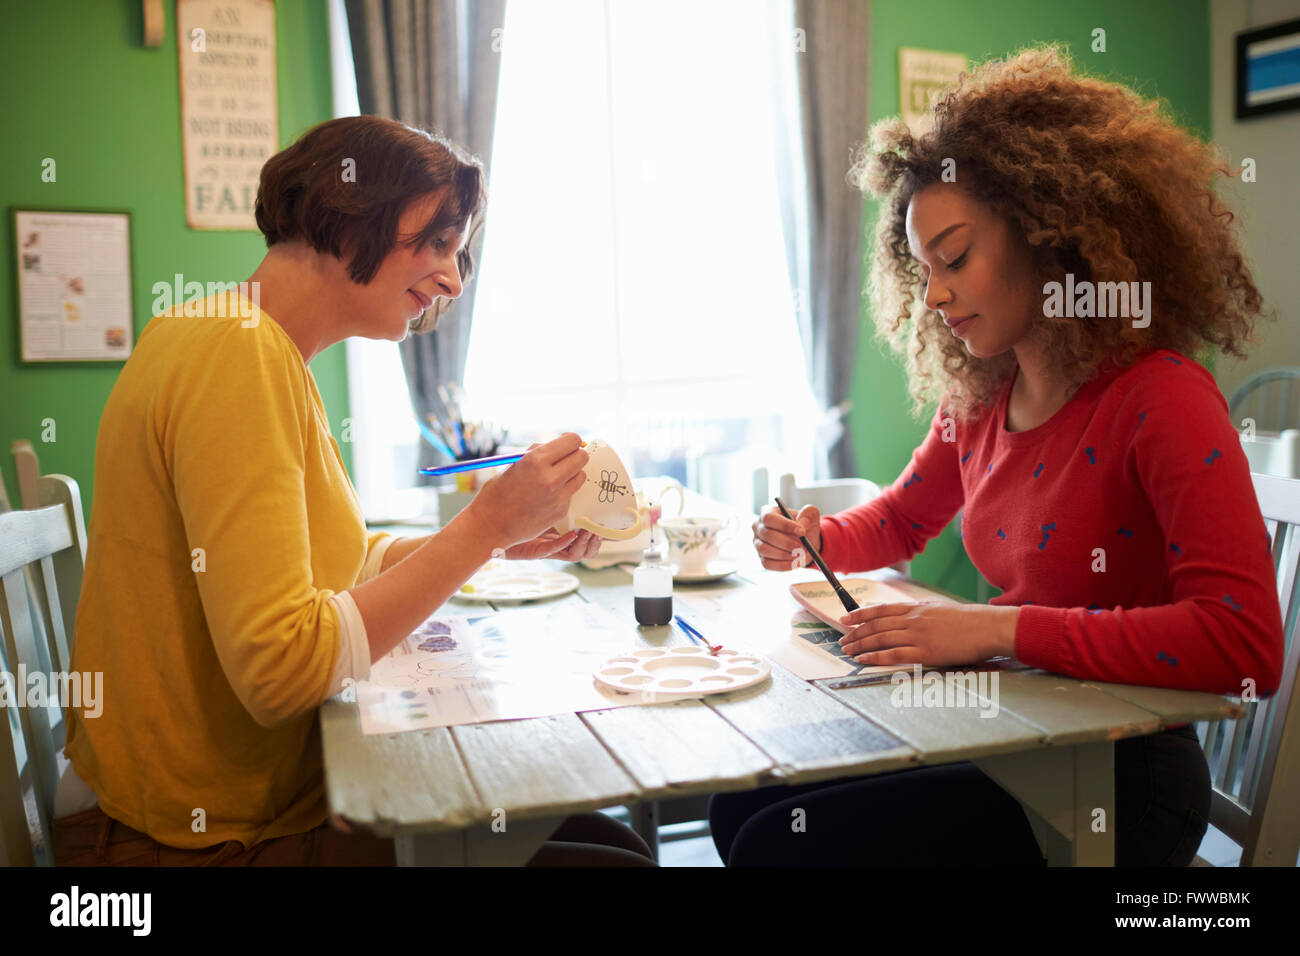 Two Women In Ceramic Painting Class - Stock Image